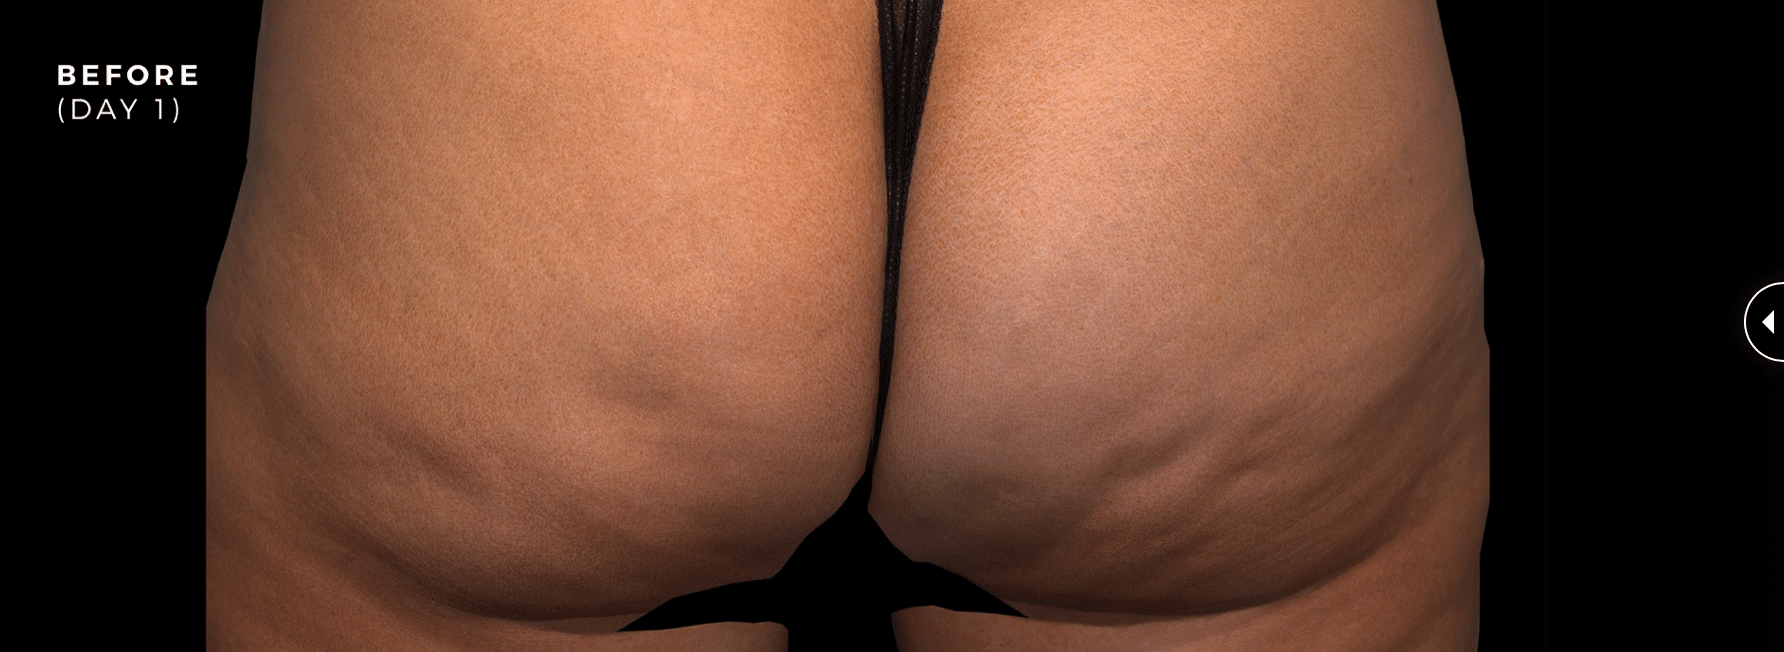 before qwo cellulite image